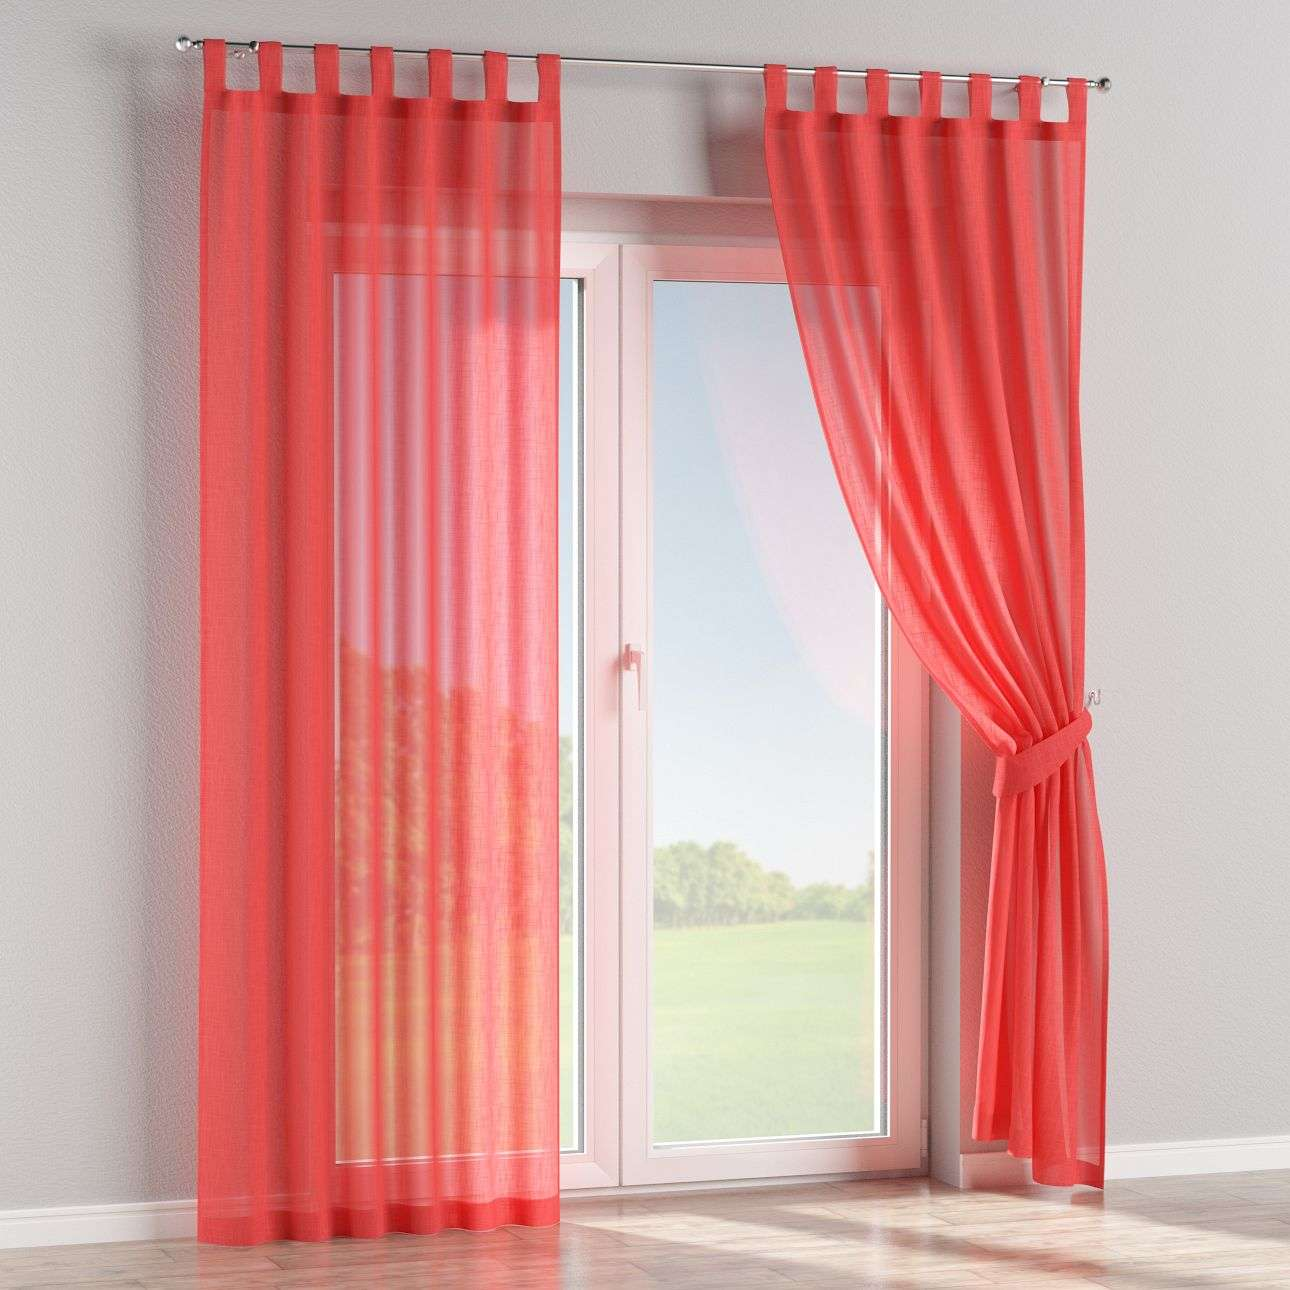 Tab top curtains 130 x 260 cm (51 x 102 inch) in collection Romantica, fabric: 128-02